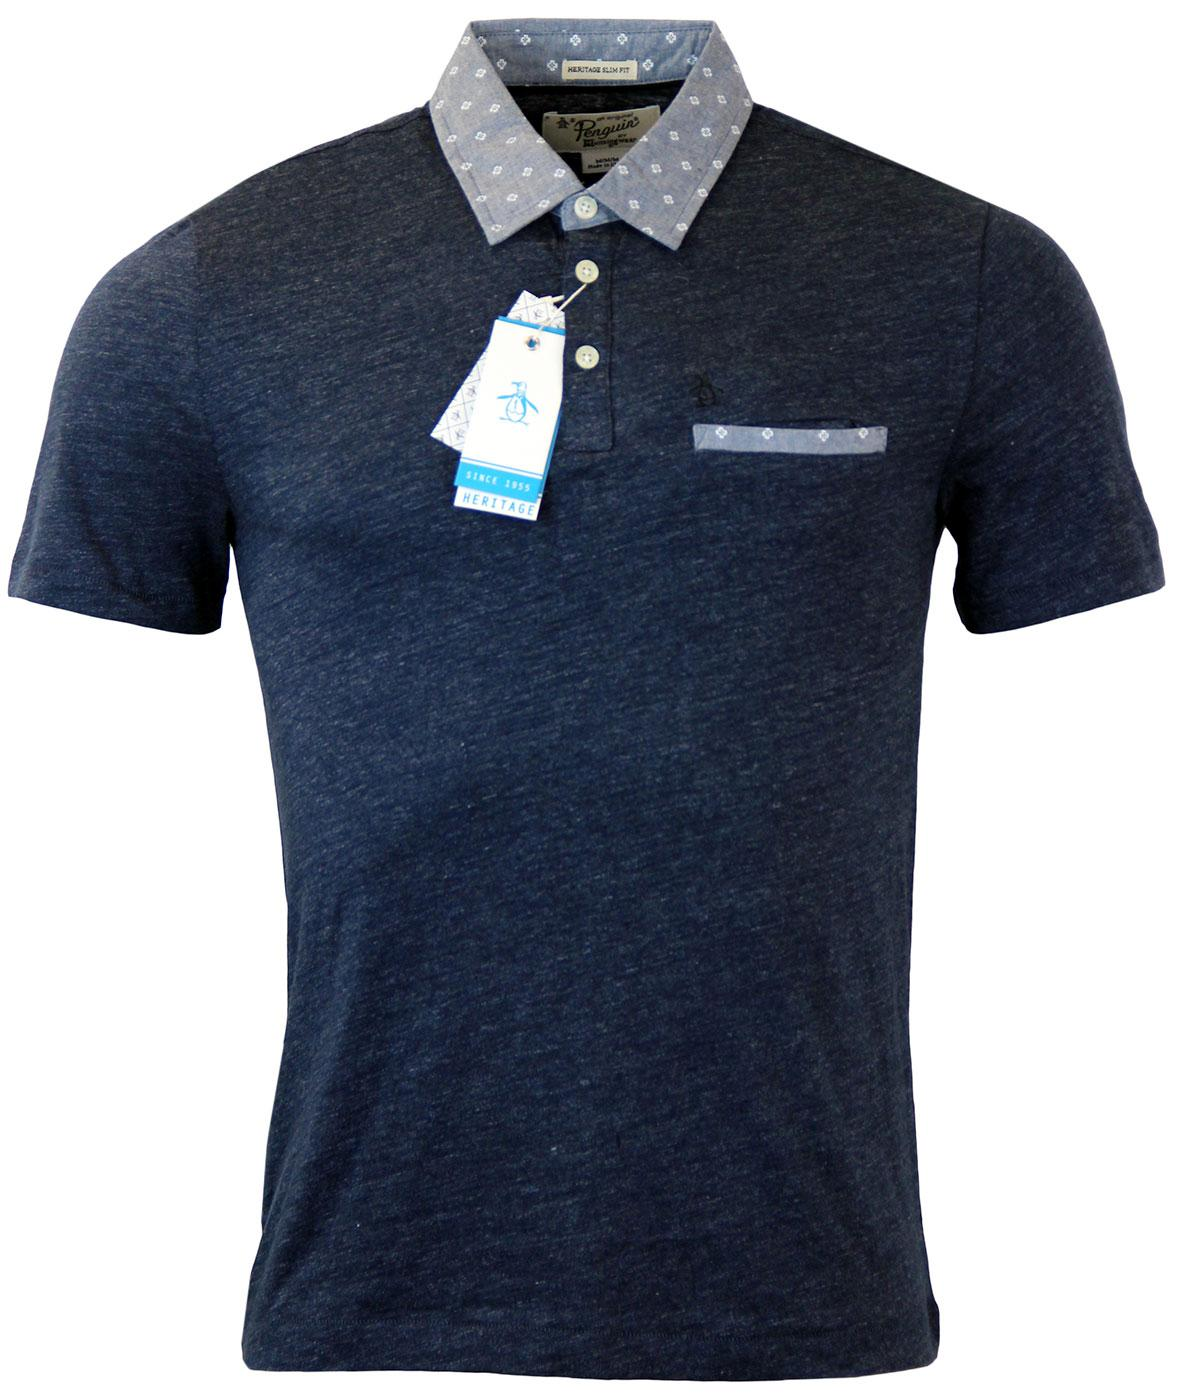 Mullined ORIGINAL PENGUIN Retro Mod Slub Polo